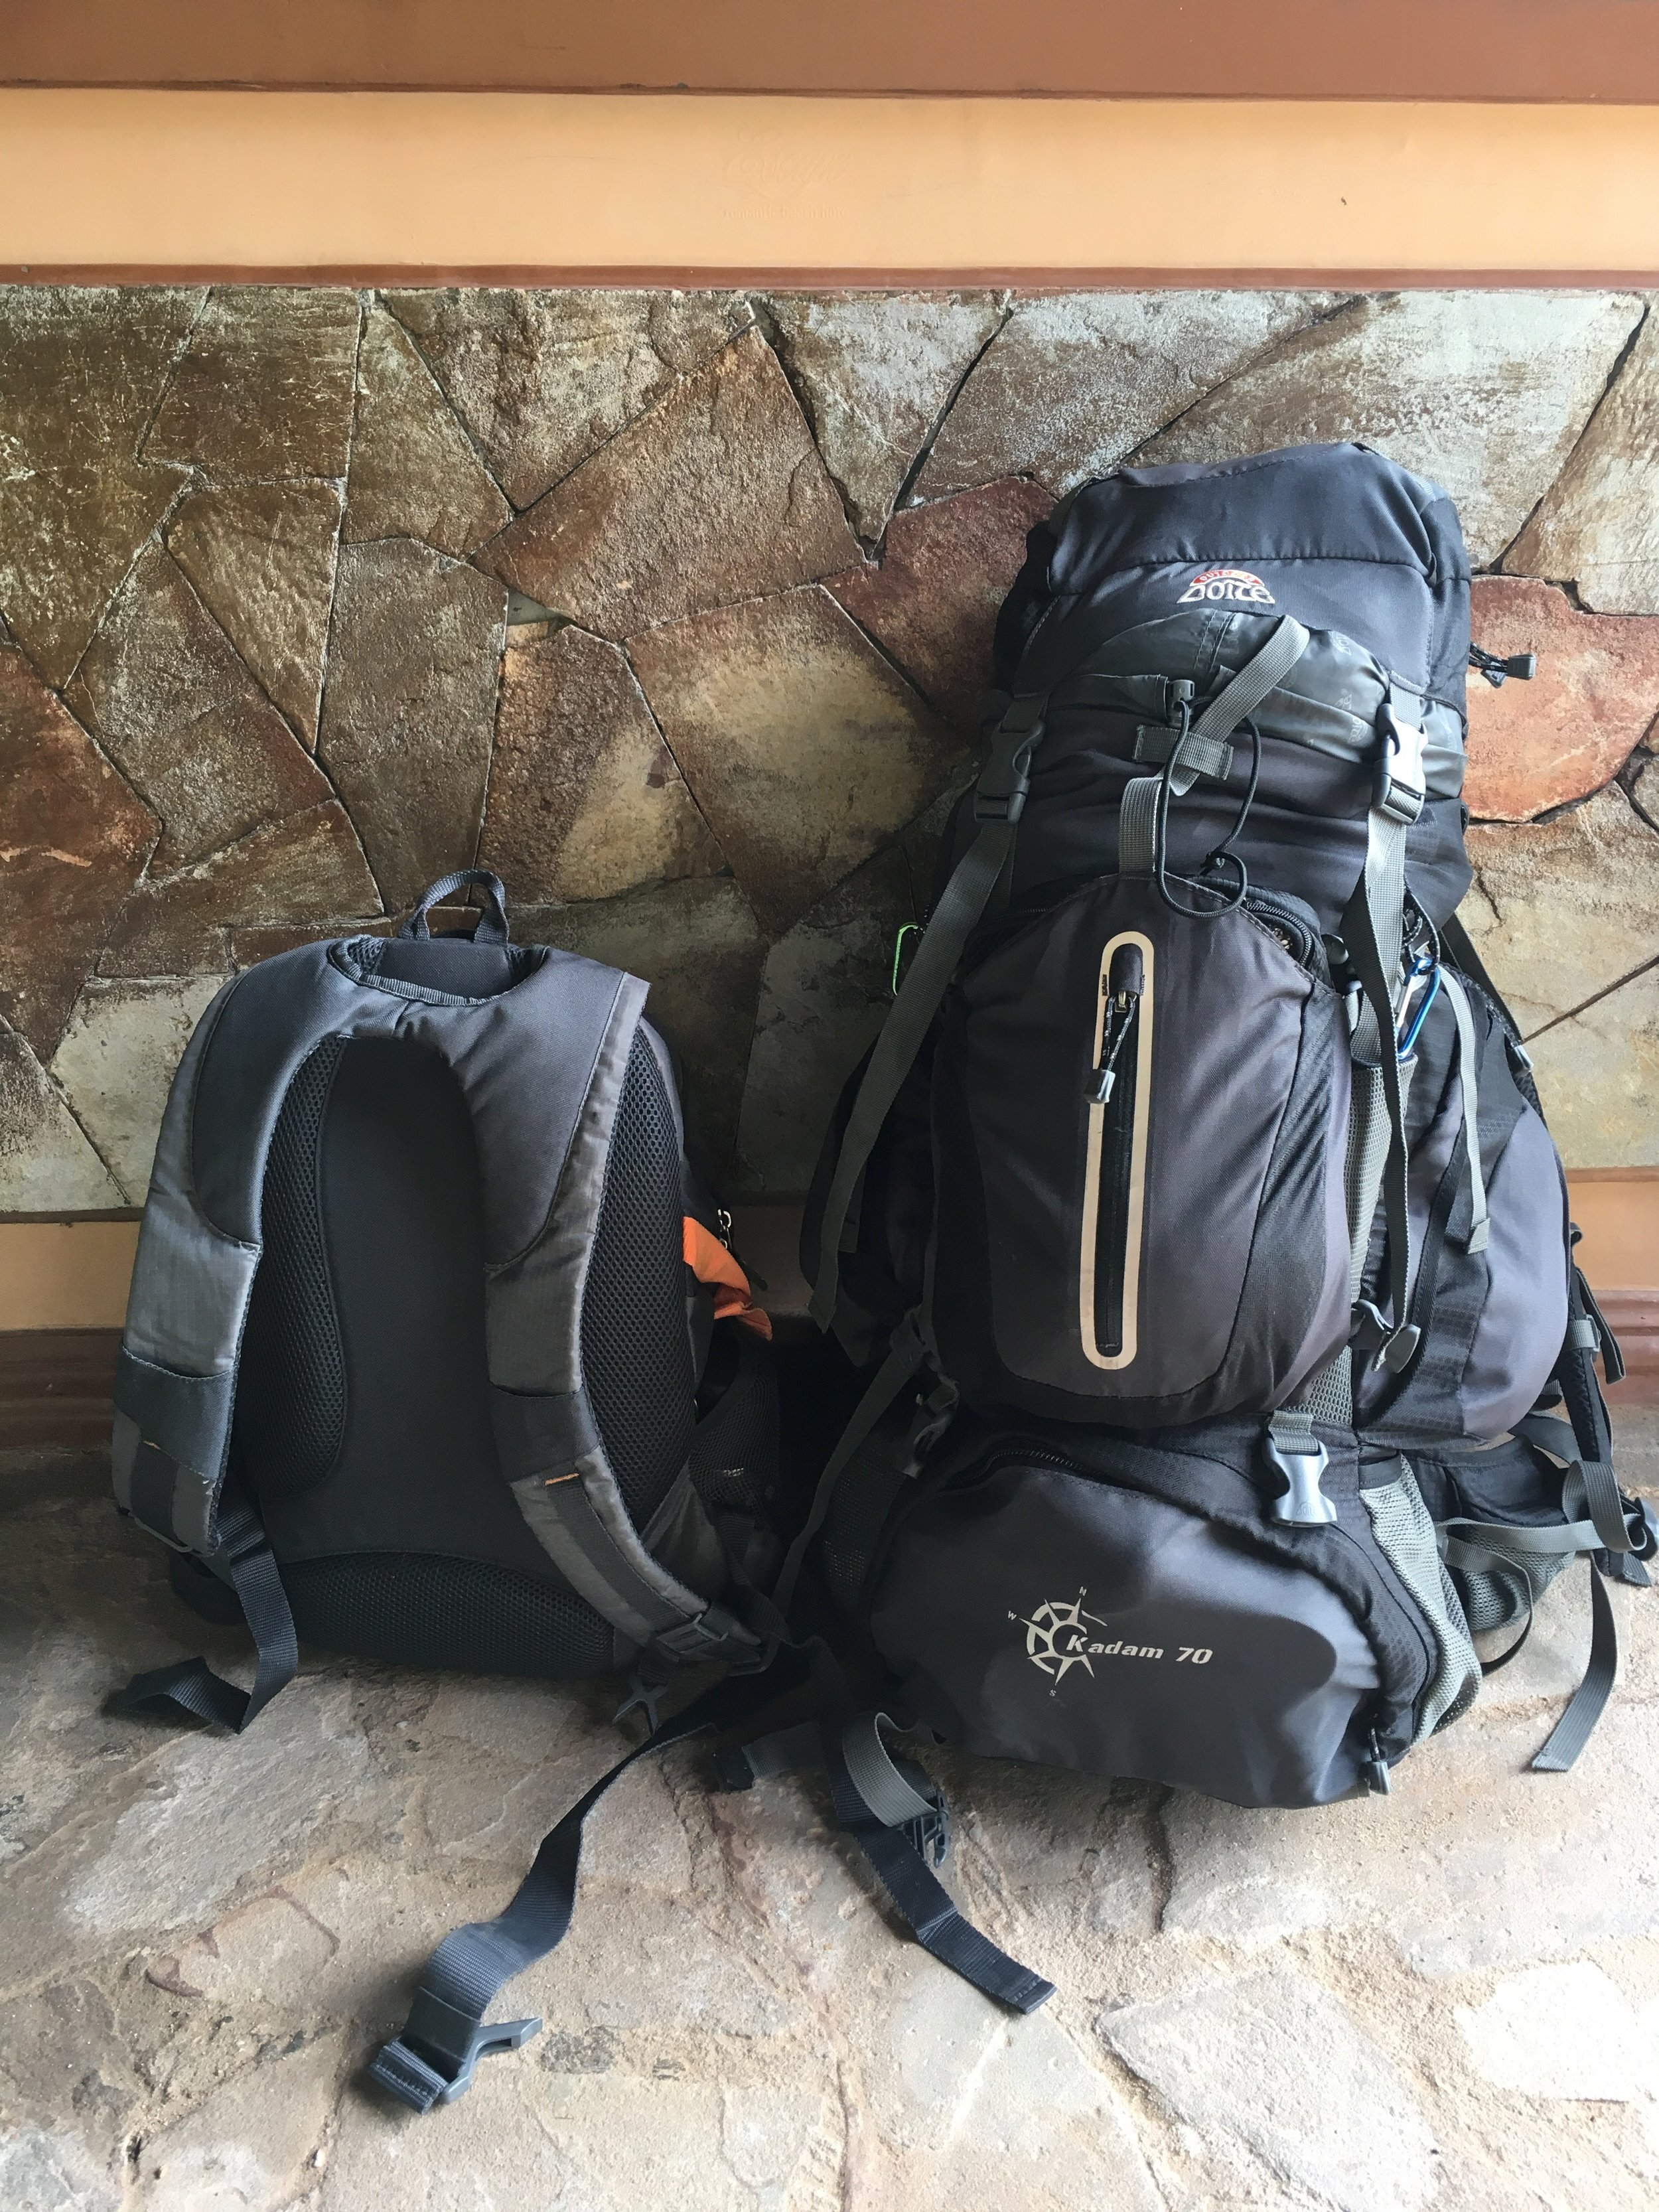 Our backpacks for all four, touring Indonesia.